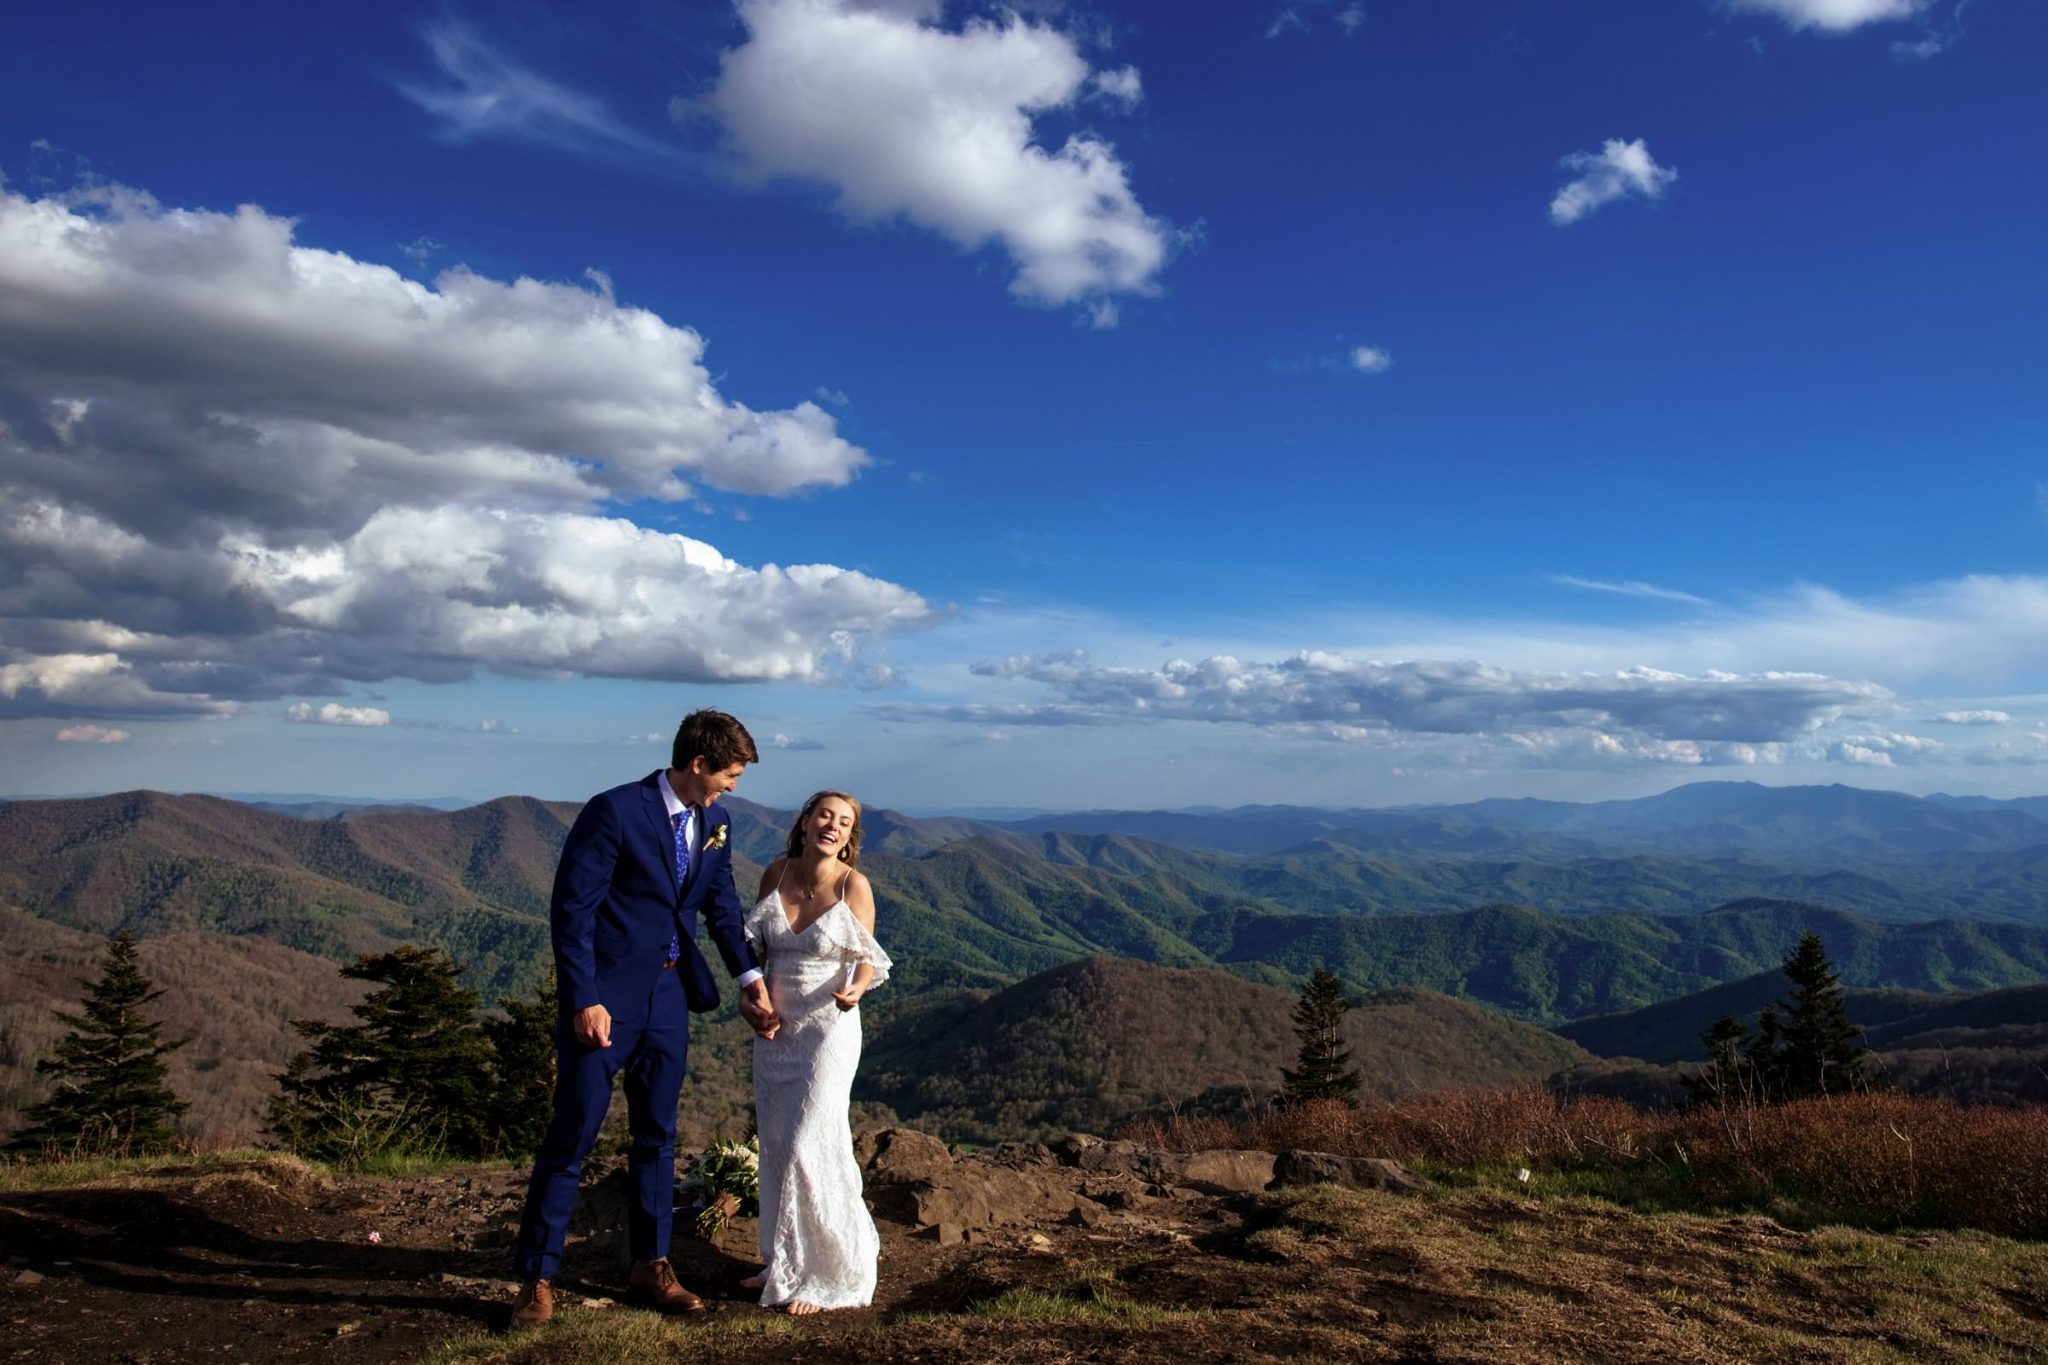 wedding couple laughing after ceremony on mountain top